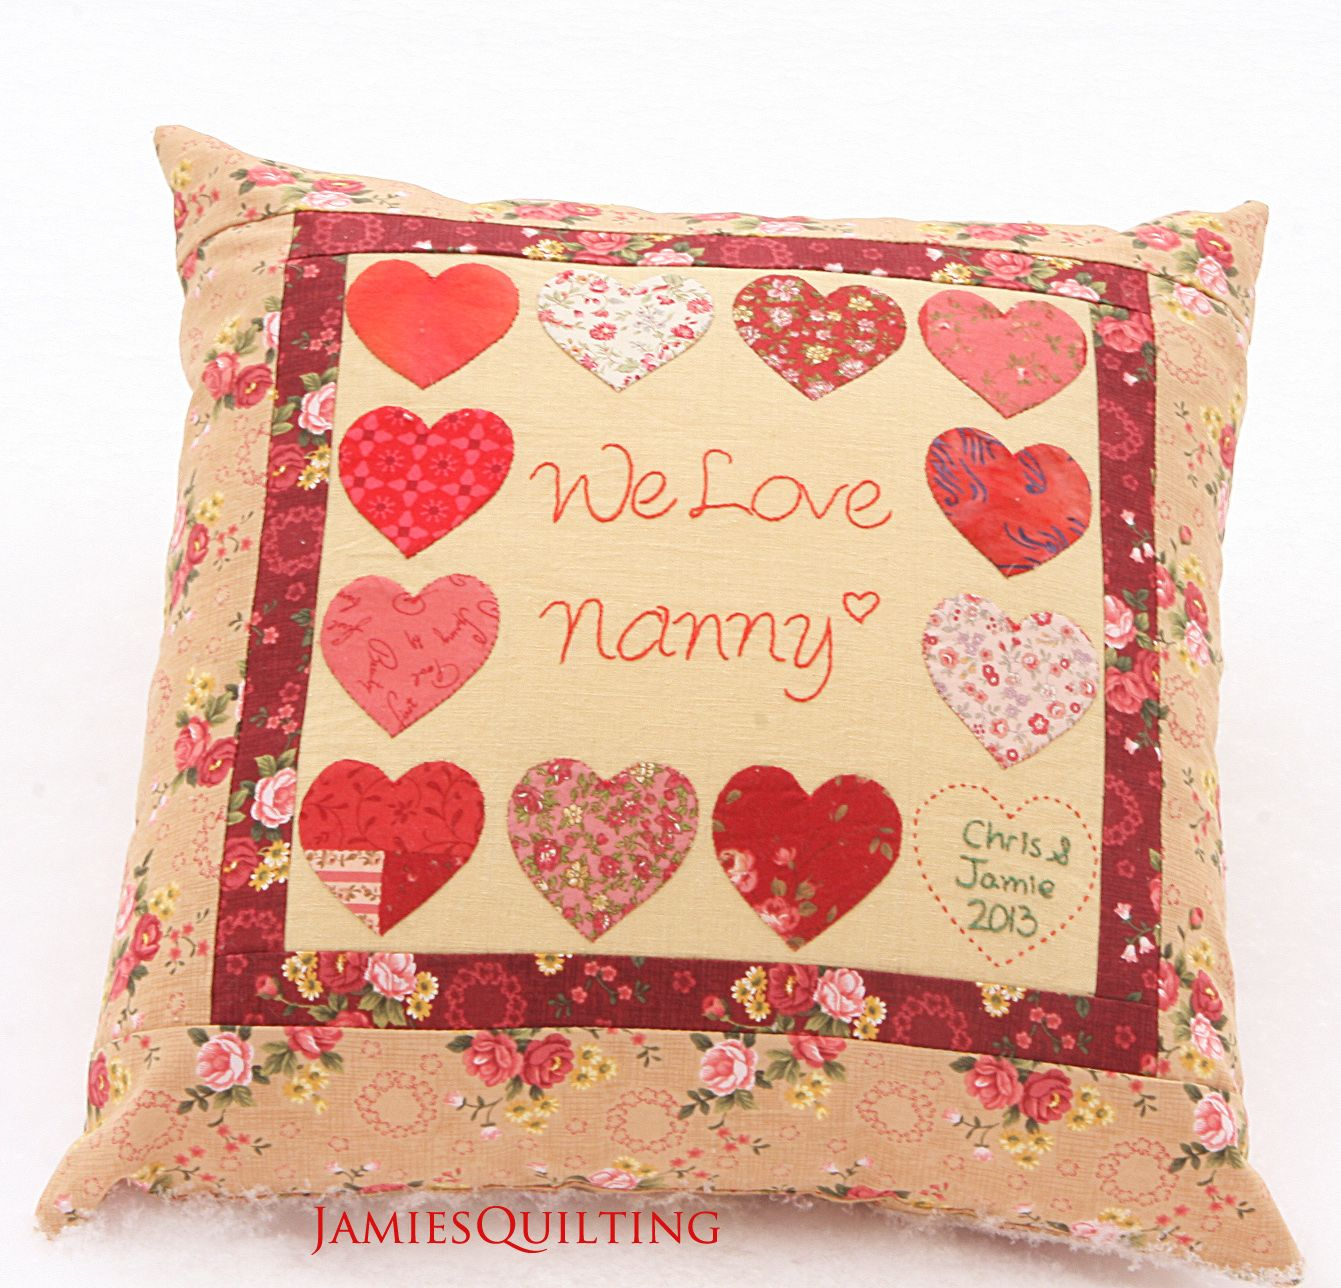 Love House Nanny Heart Pillow Case Finished Quilt House